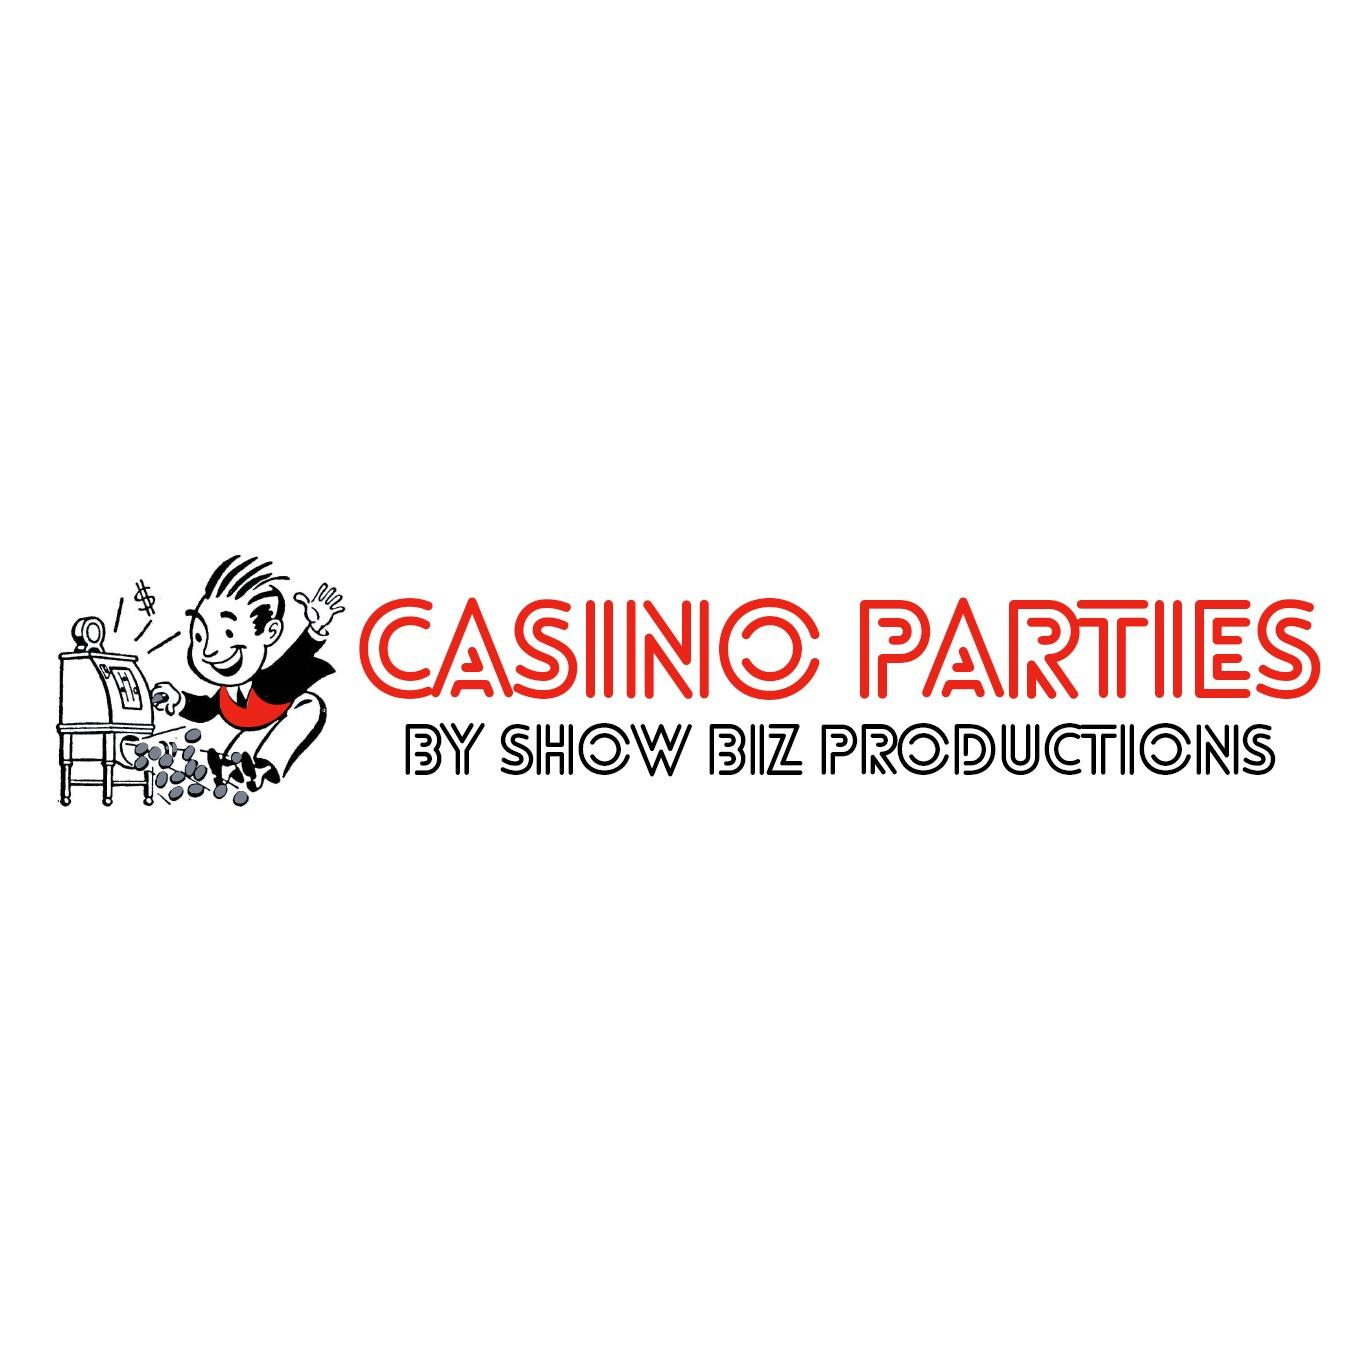 Casino Parties by Show Biz Productions - Reisterstown, MD - Casinos